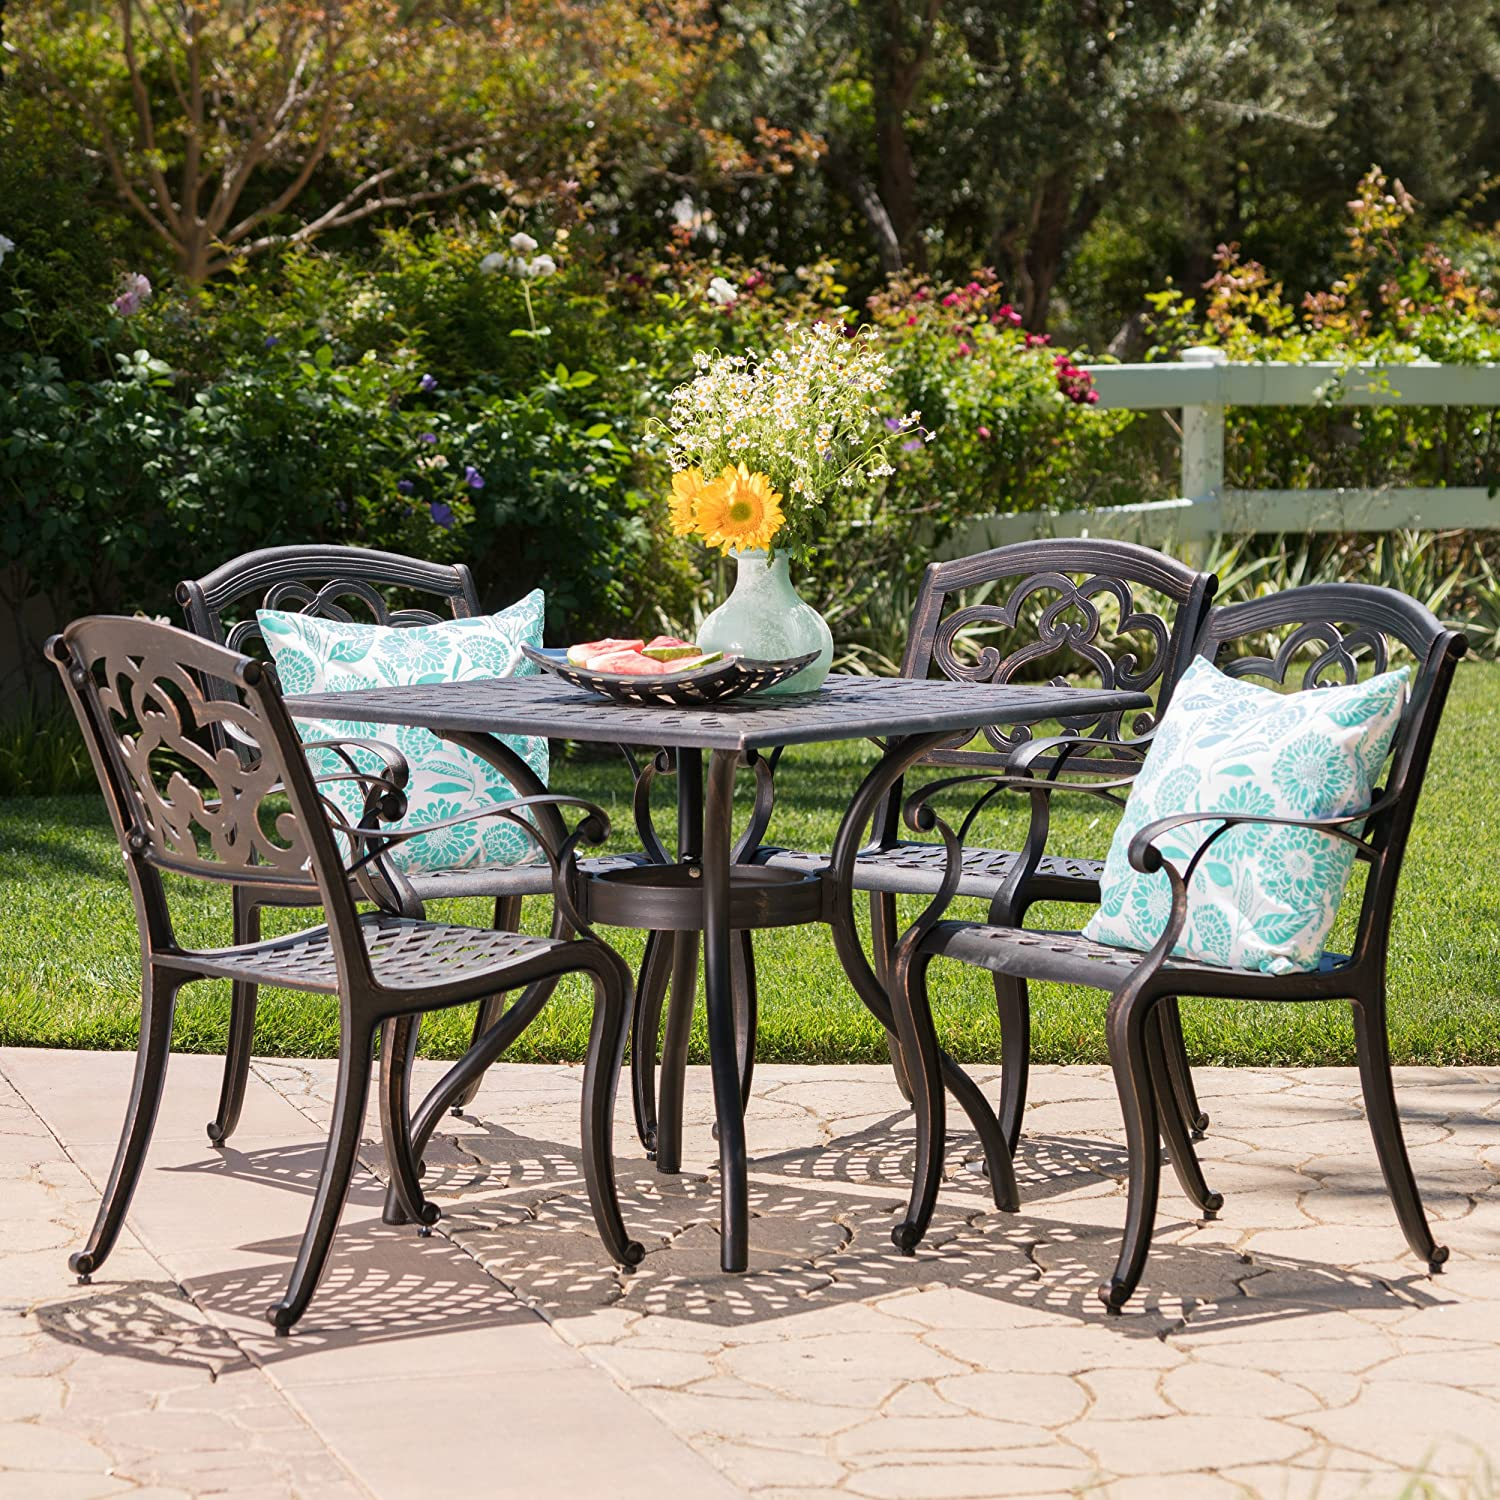 Amazon.com: Augusta | 5 Piece Outdoor Cast Aluminum Dining Set | Perfect  for Patio | in Shiny Copper: Garden & Outdoor - Amazon.com: Augusta 5 Piece Outdoor Cast Aluminum Dining Set